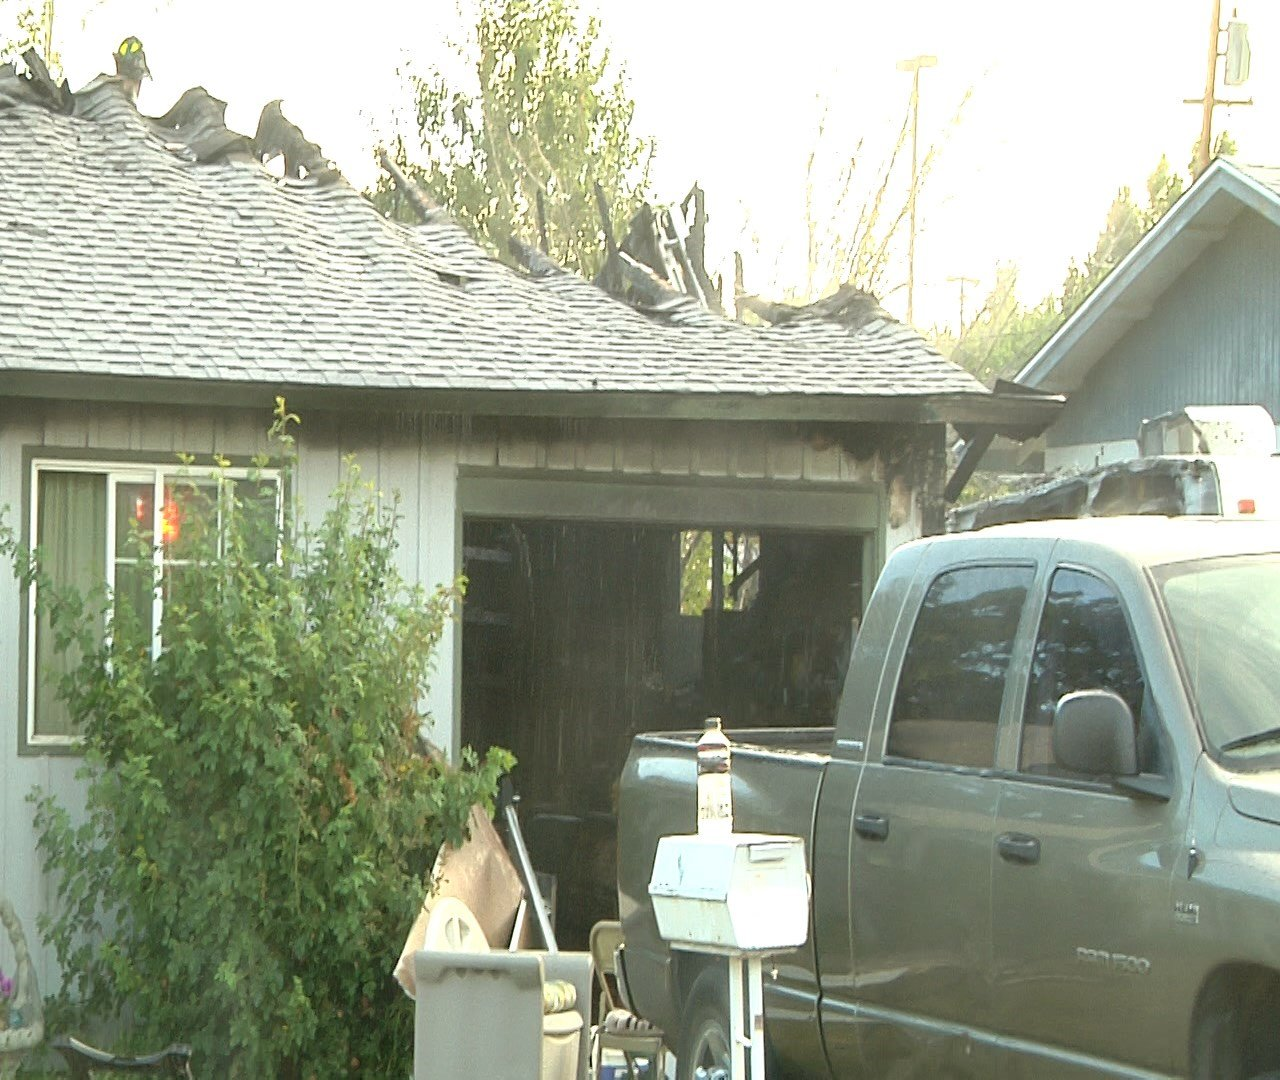 Home damaged by fire 7/19/16